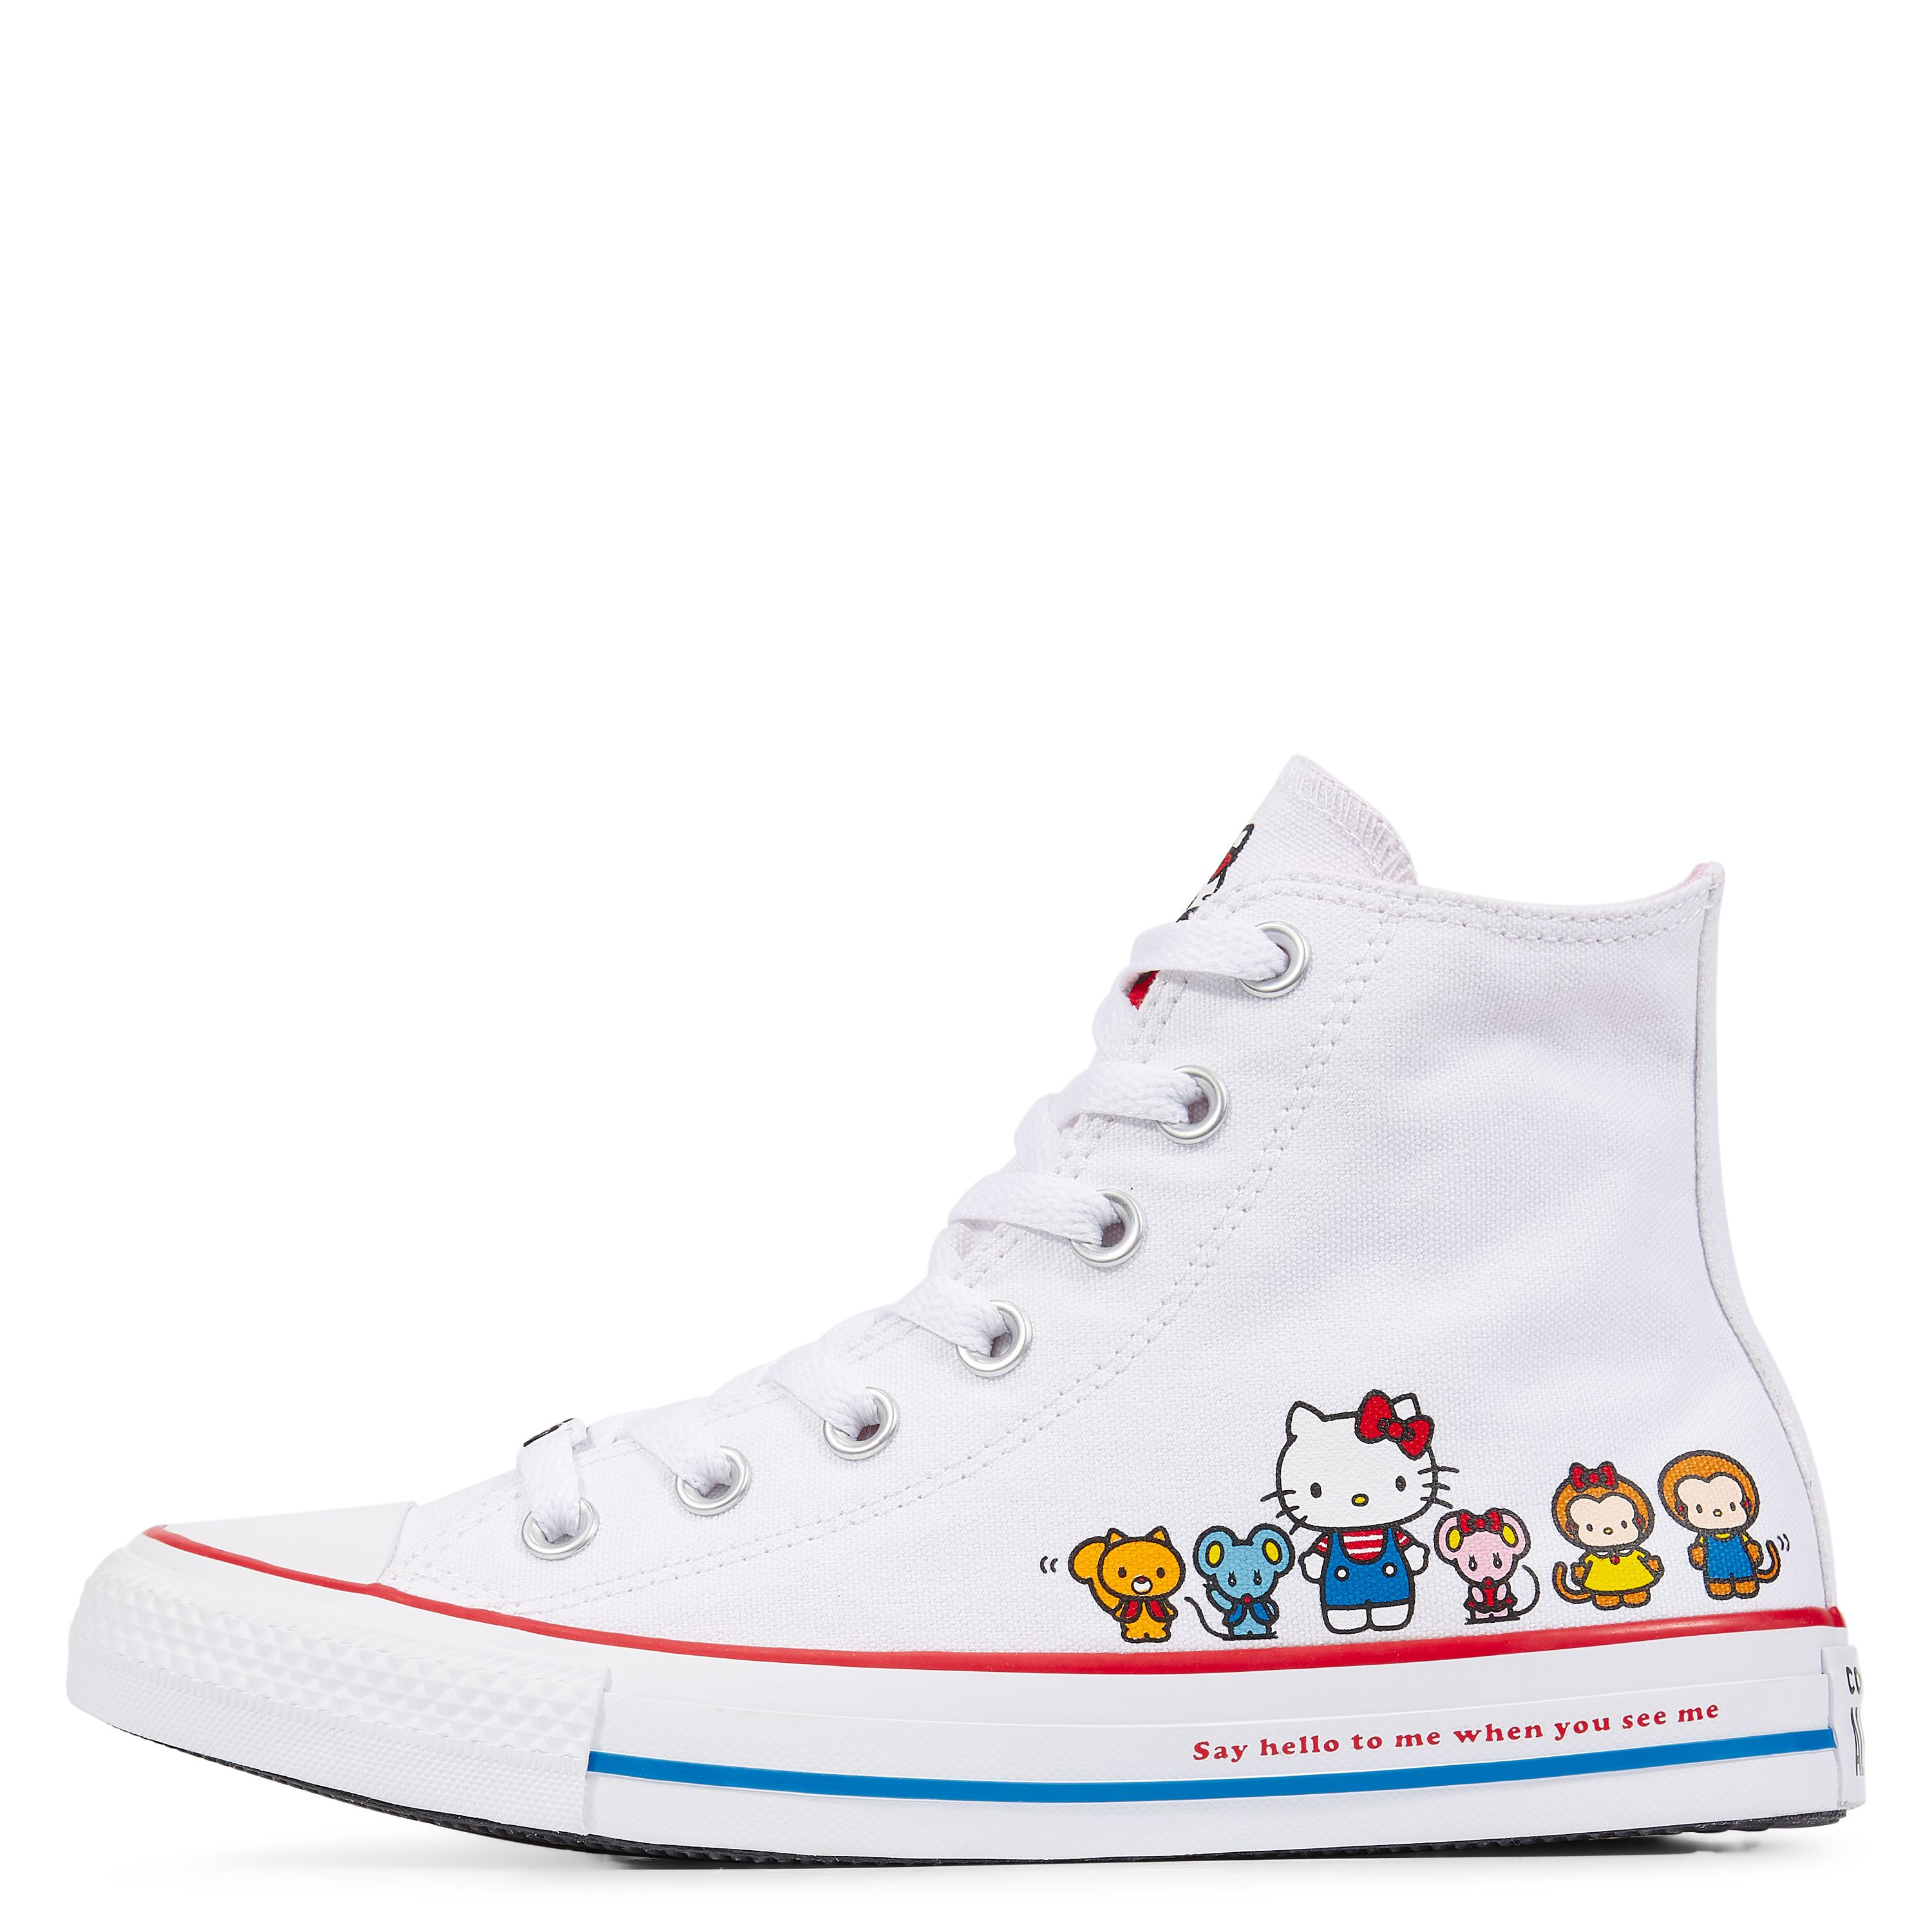 342f4f3f1357 Converse x Hello Kitty Chuck Taylor All Star White Prism Pink White ...